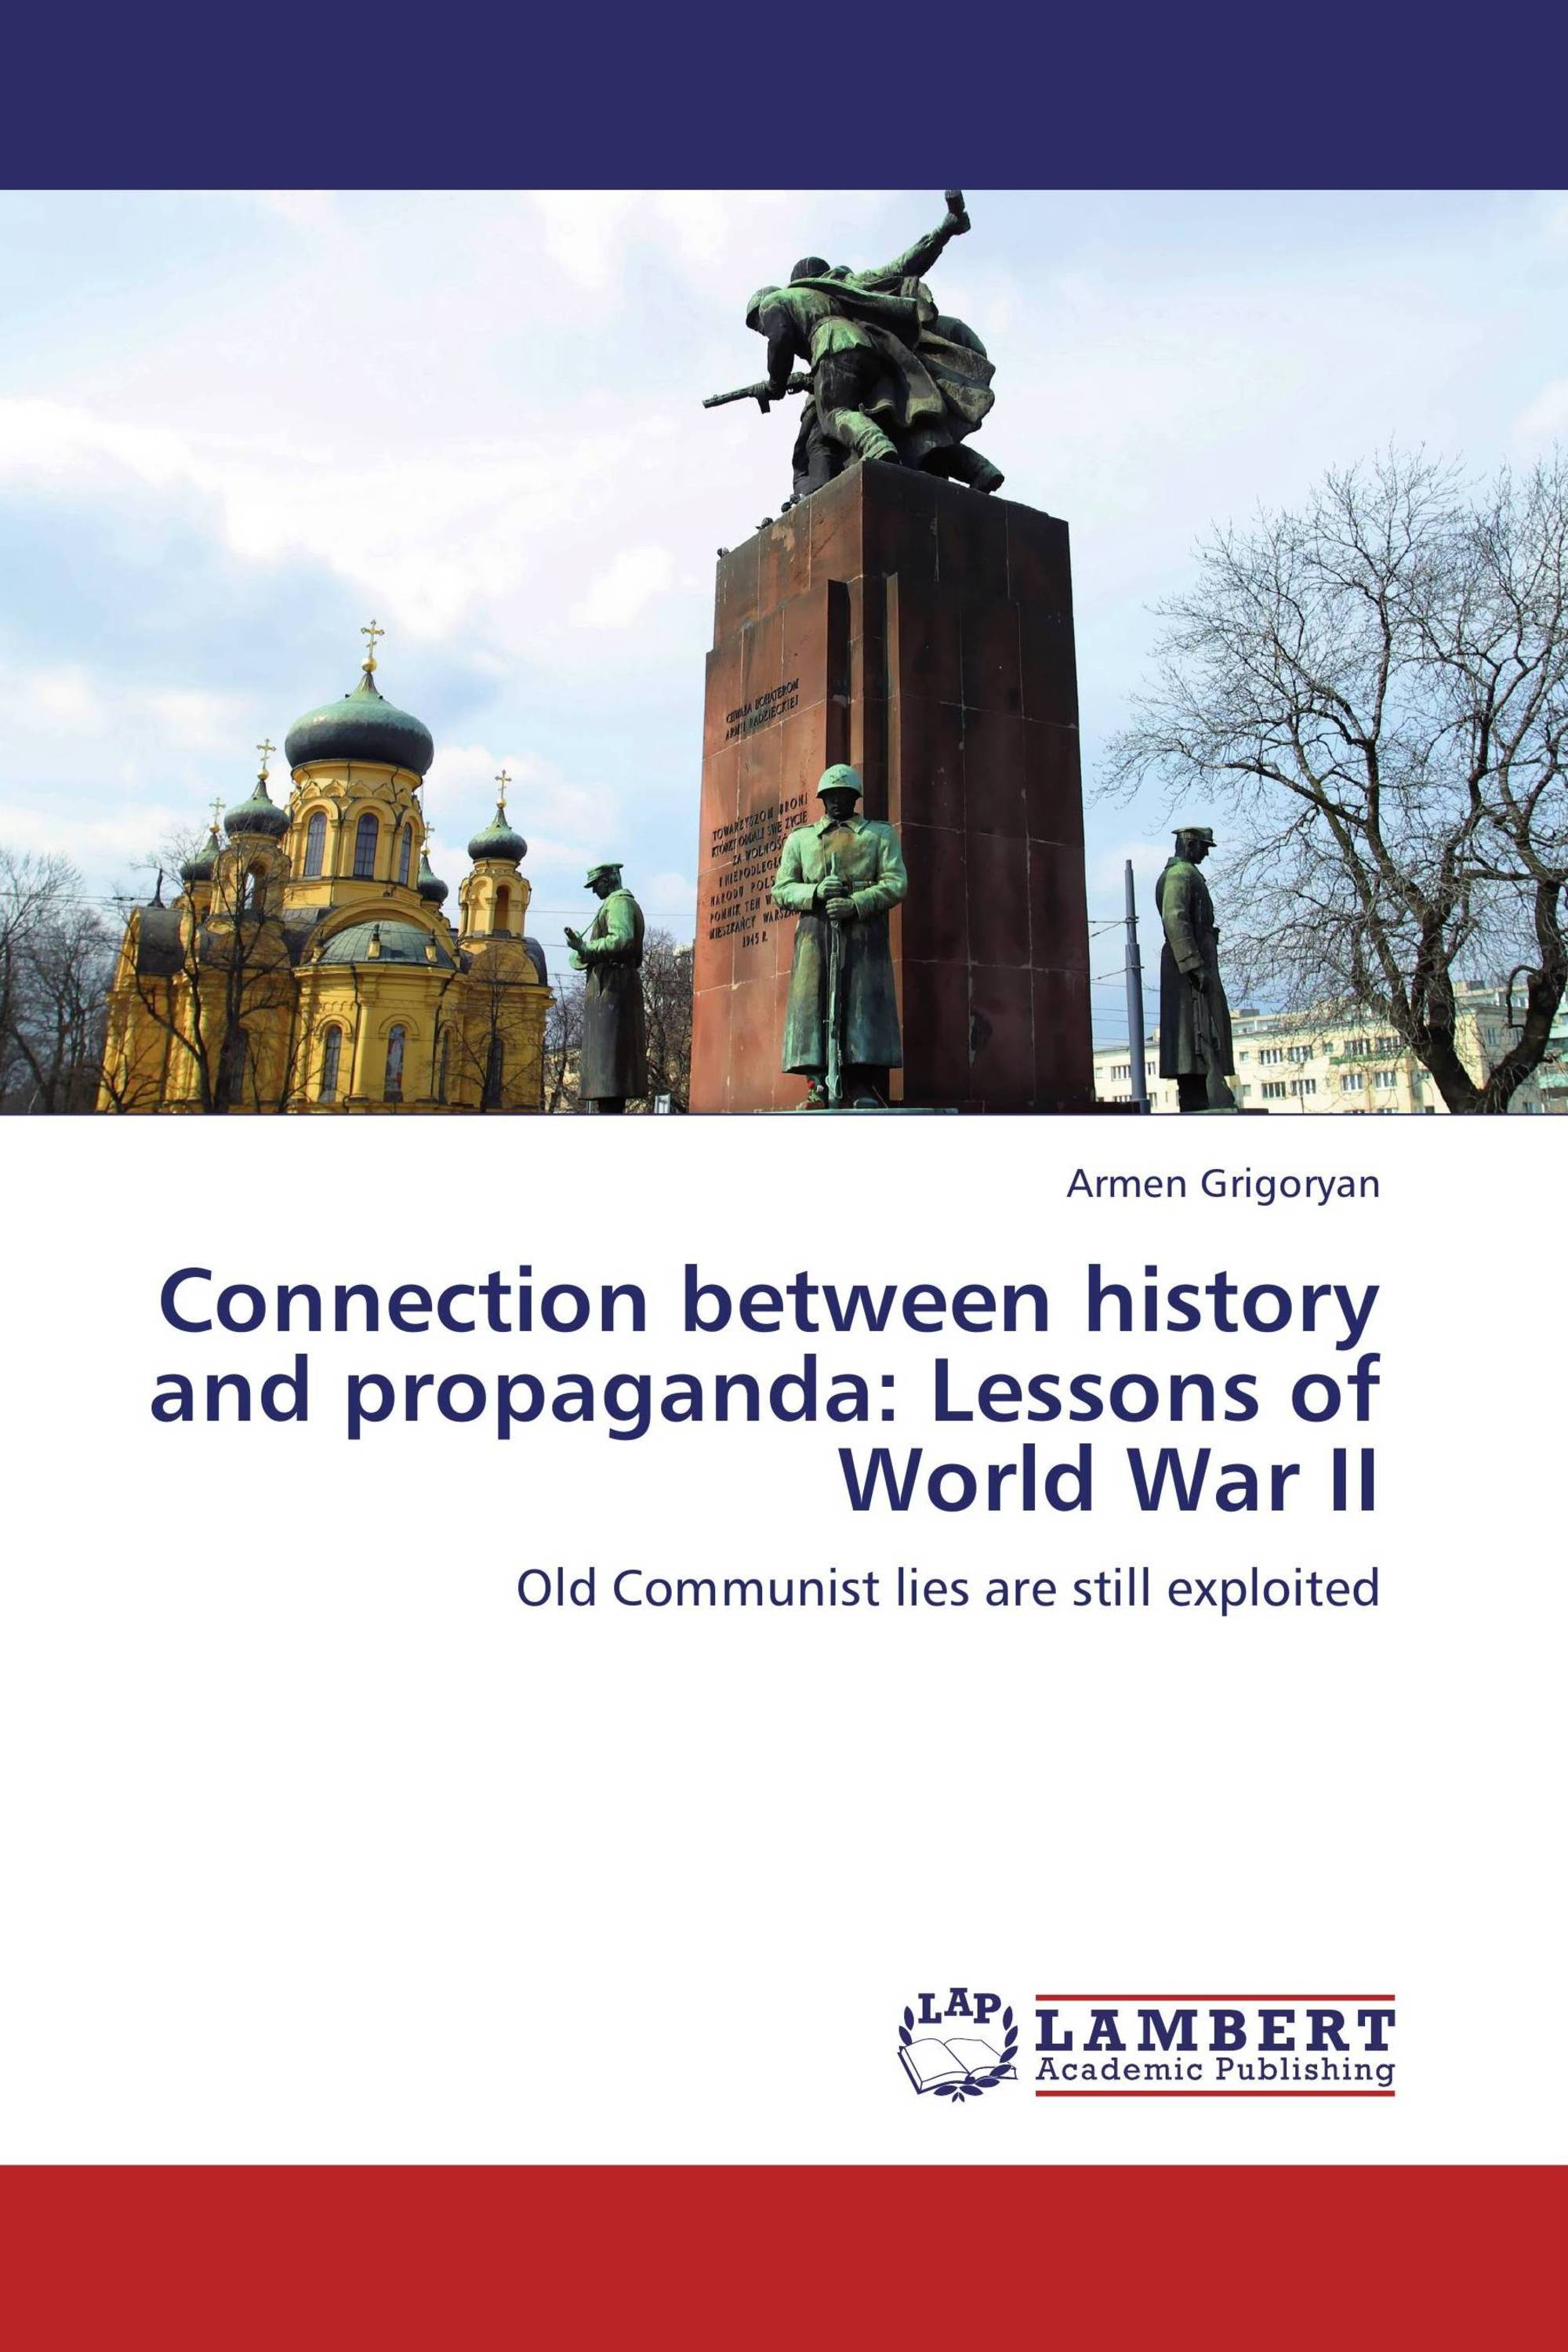 Connection between history and propaganda: Lessons of World War II